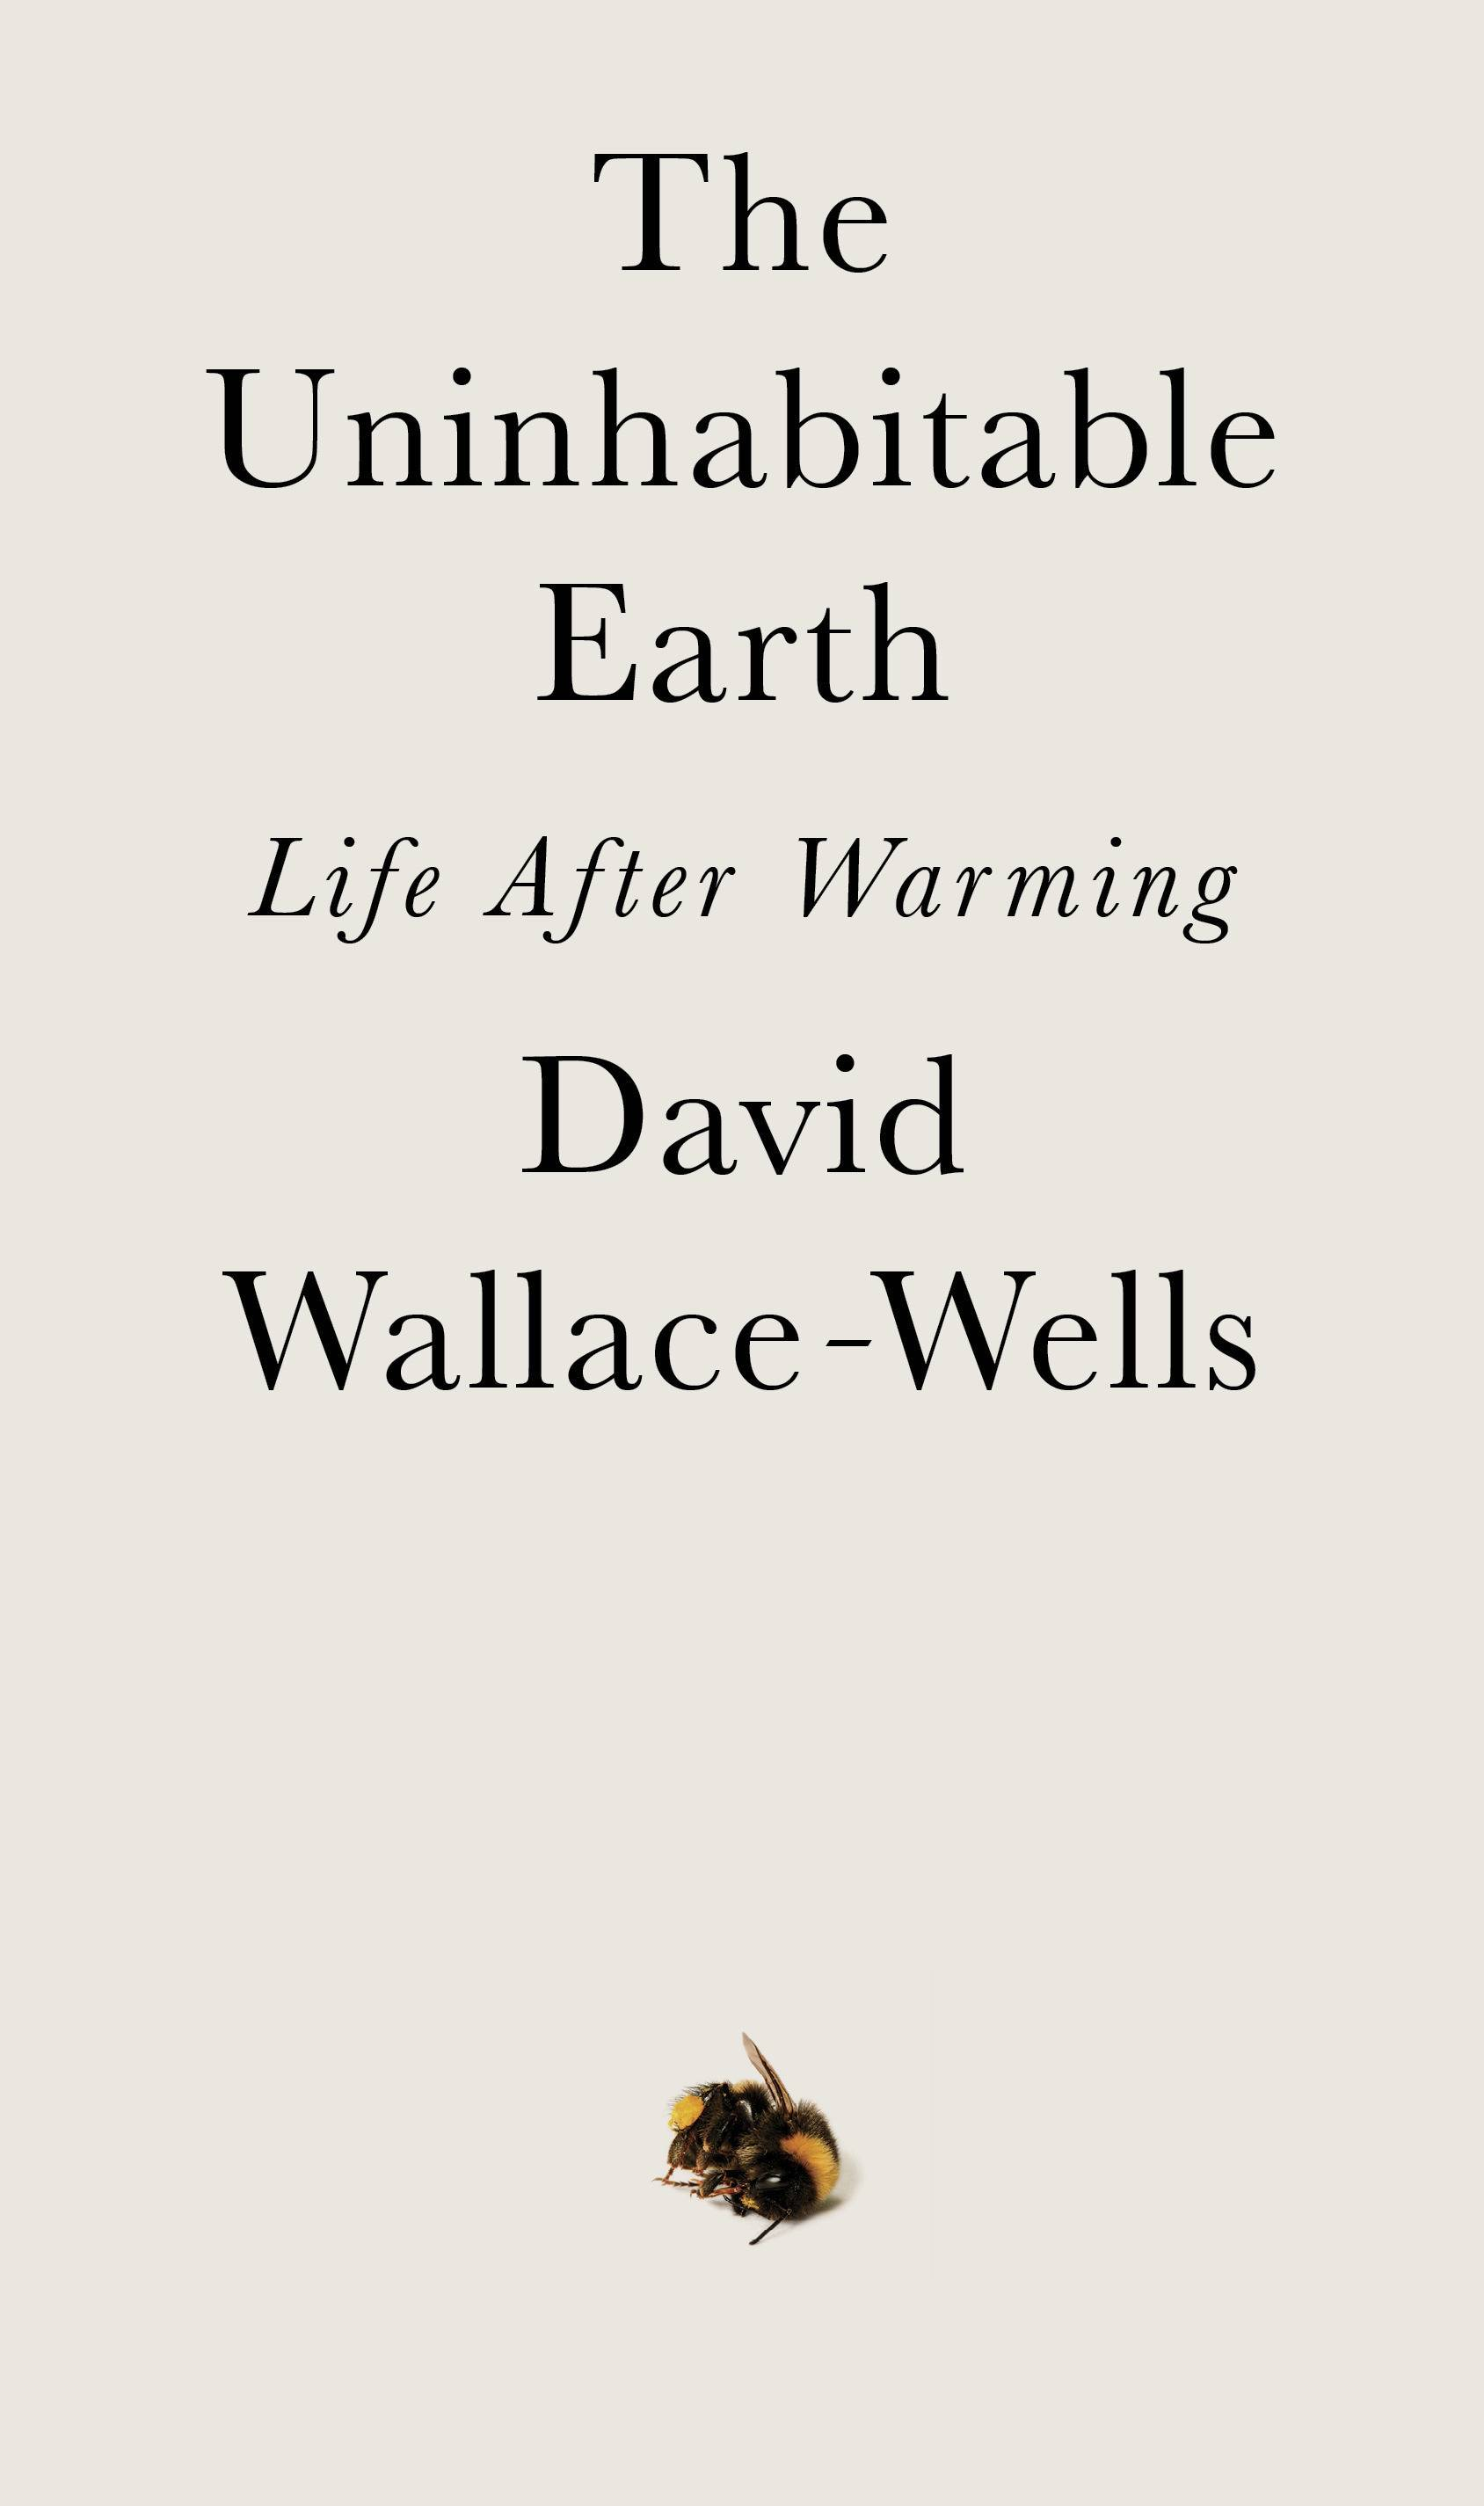 """The Uninhabitable Earth: Life After Warming"" by David Wallace-Wells"